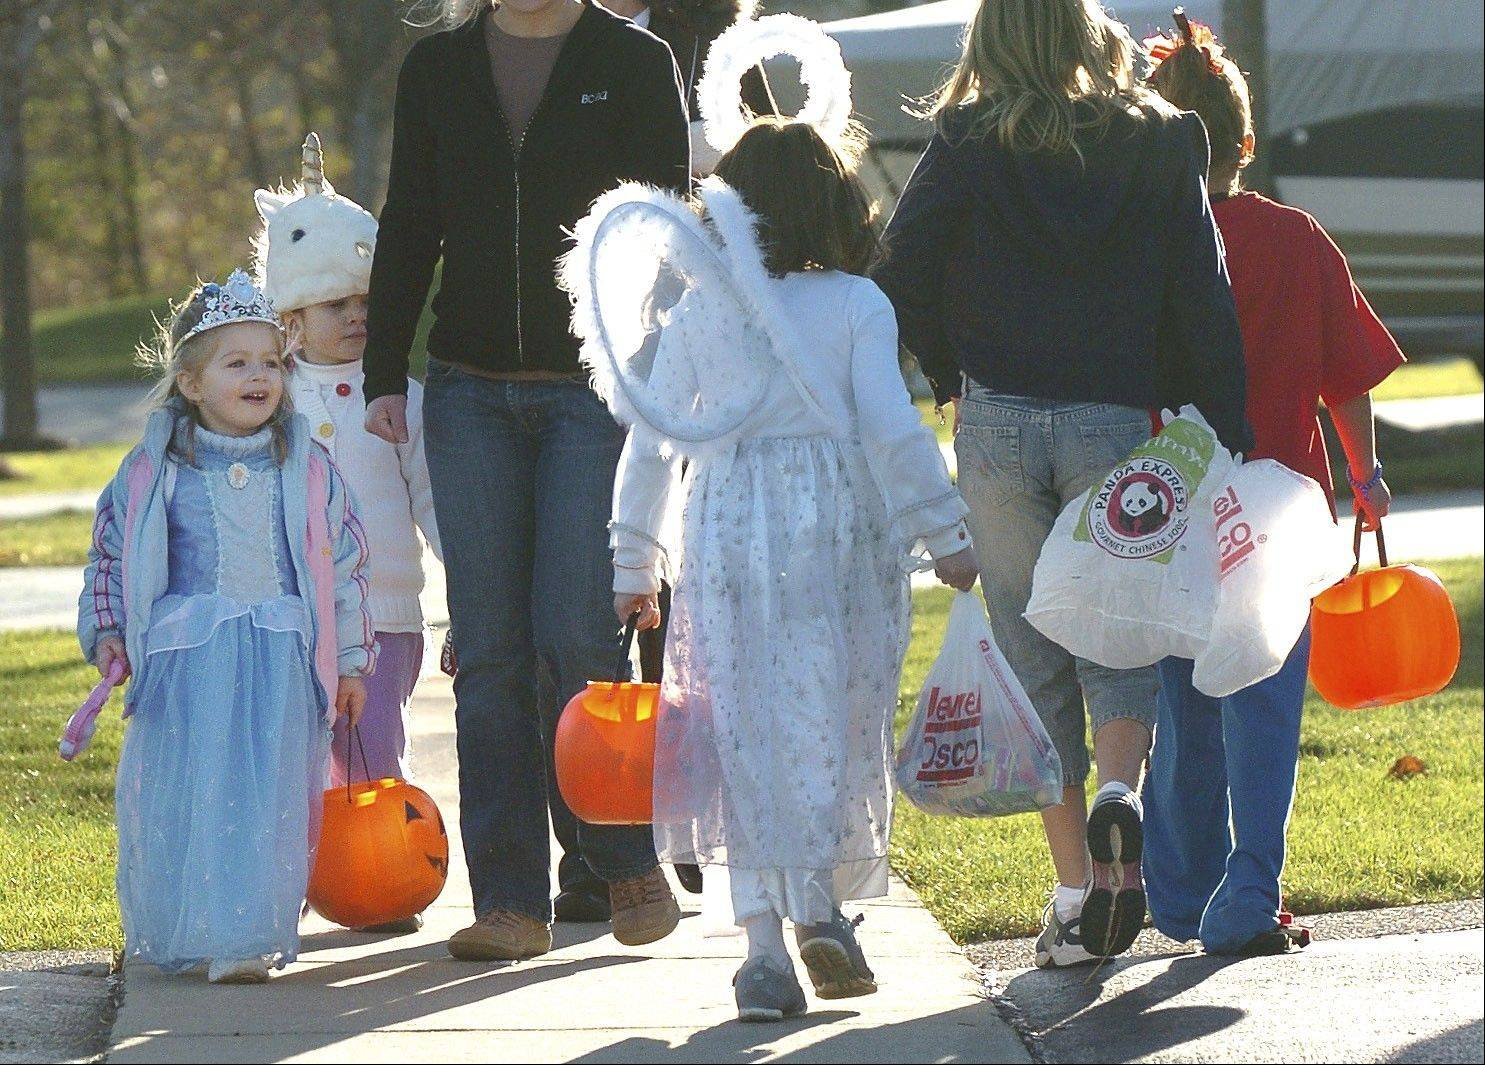 Illinois Attorney General Lisa Madigan is urging parents to check state and local sex offender registries before embarking on trick-or-treating tonight.